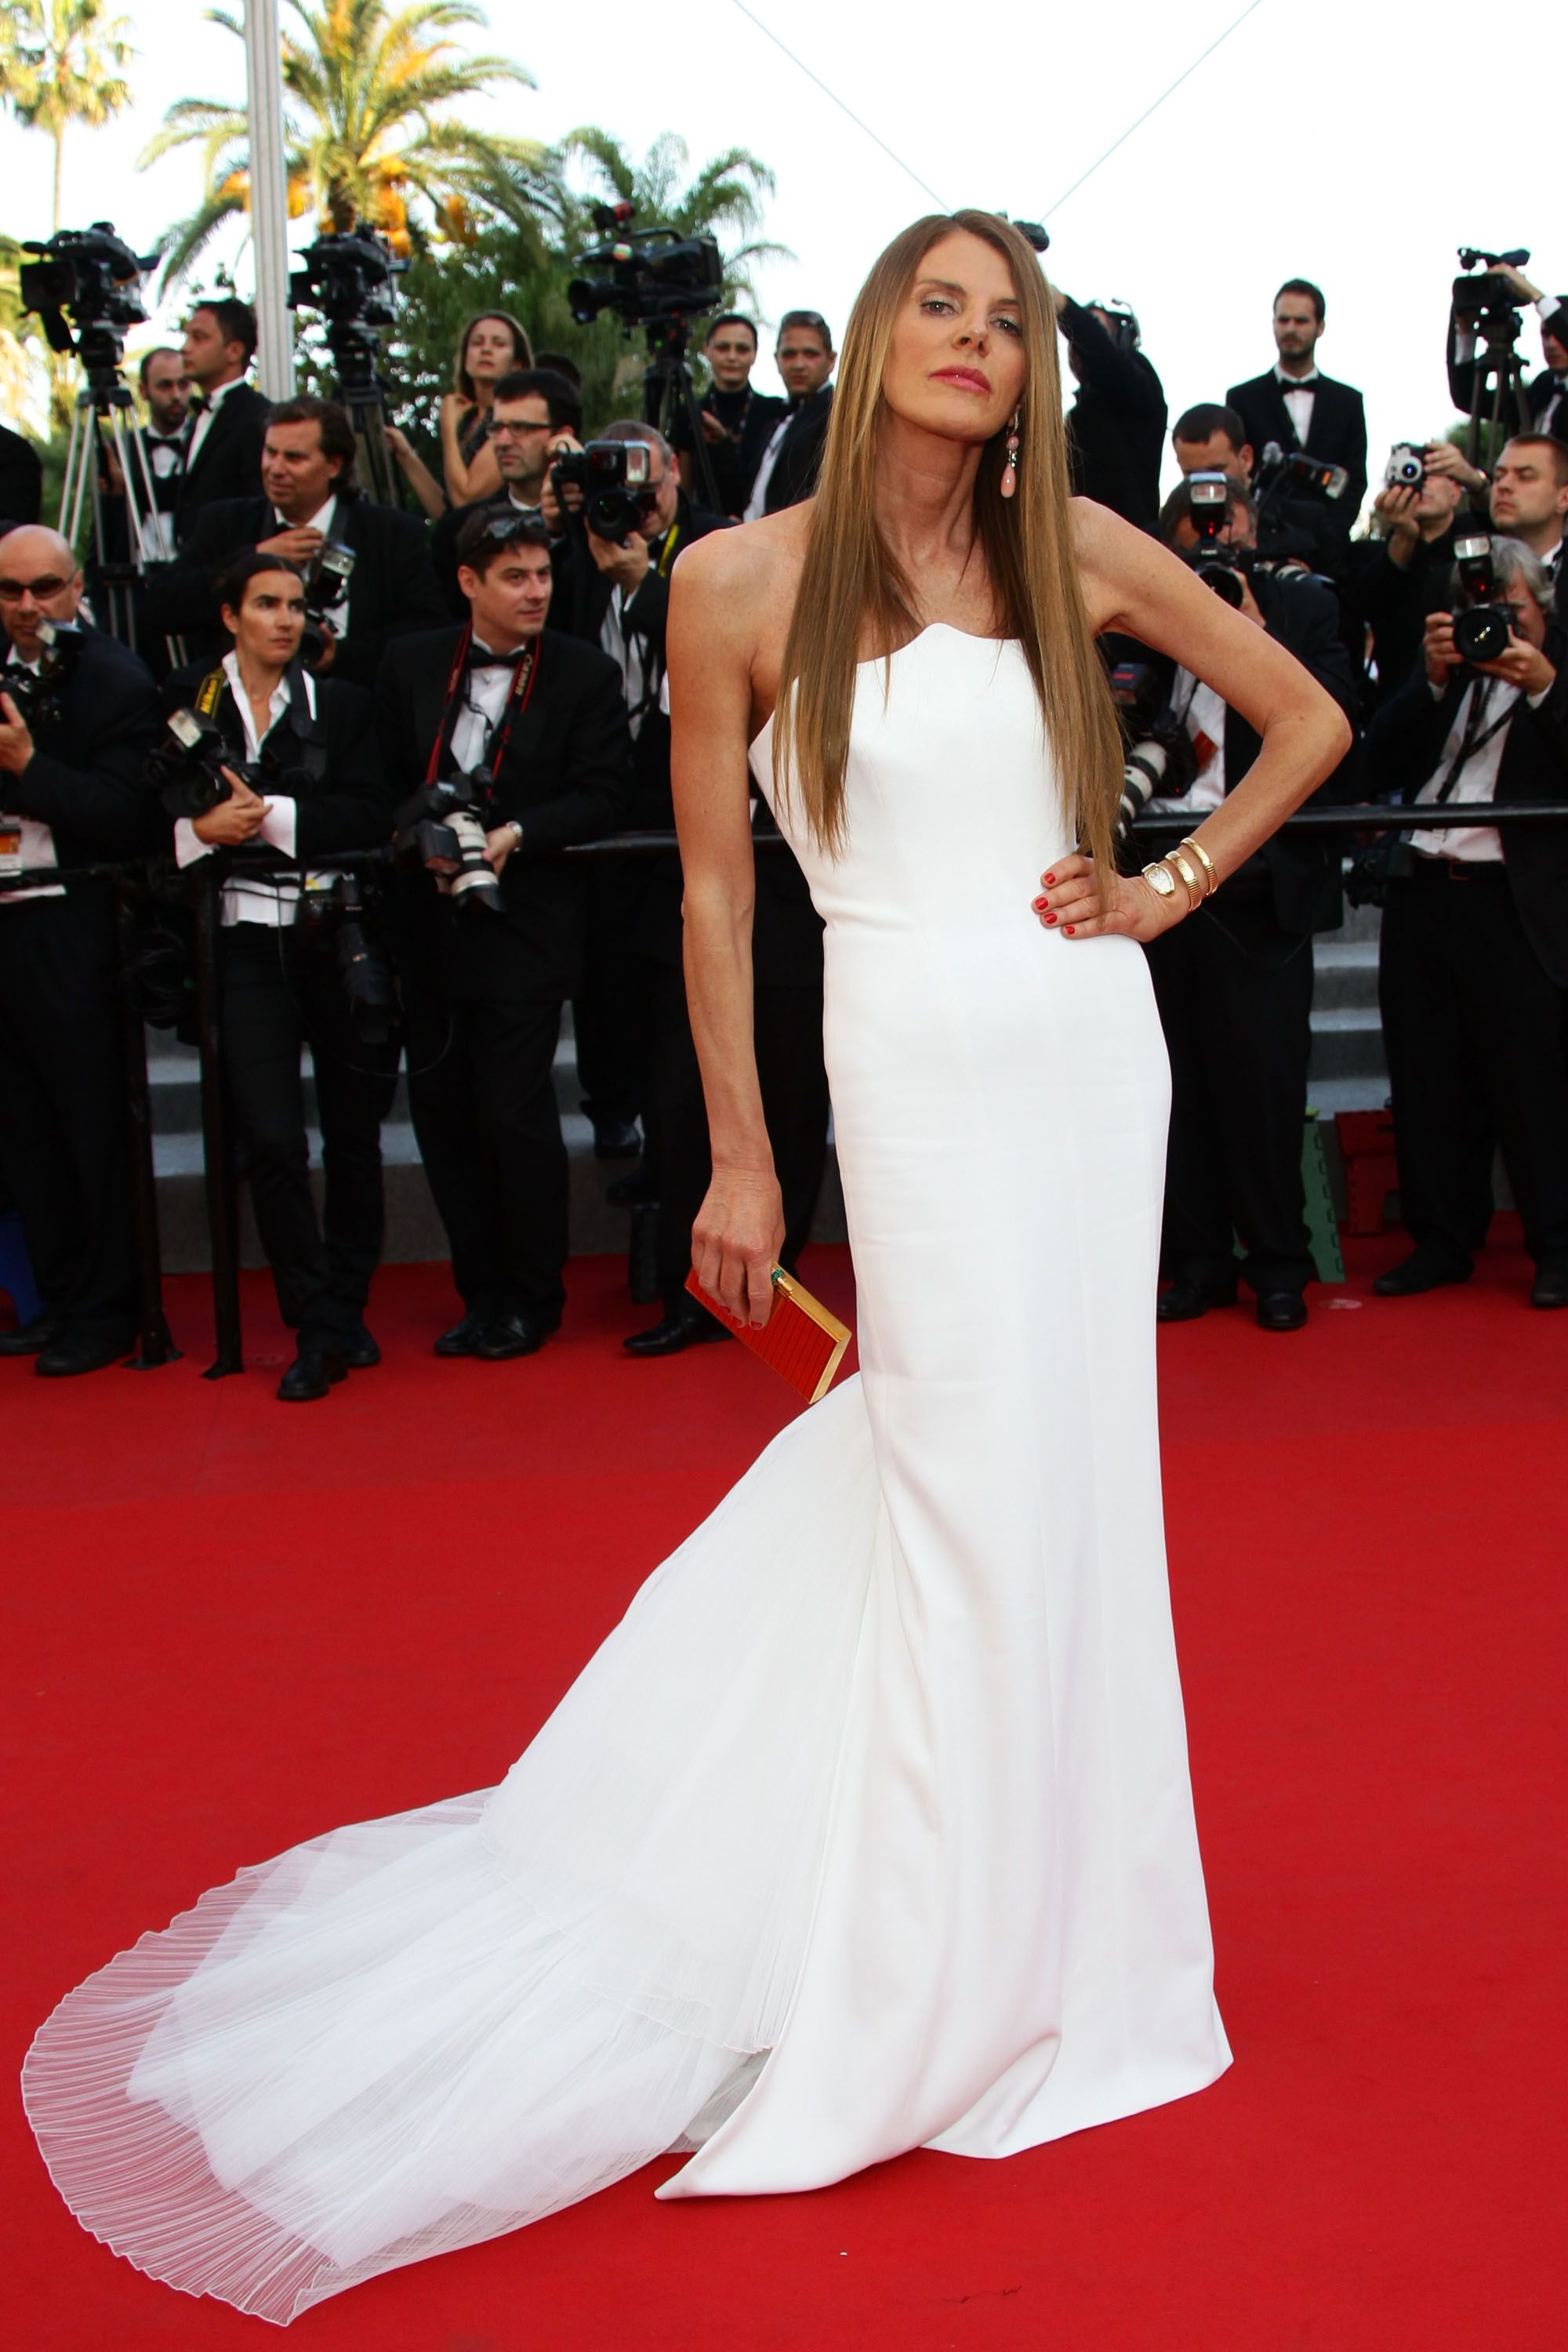 Anna dello russo looked ethereal in white red carpet dresses